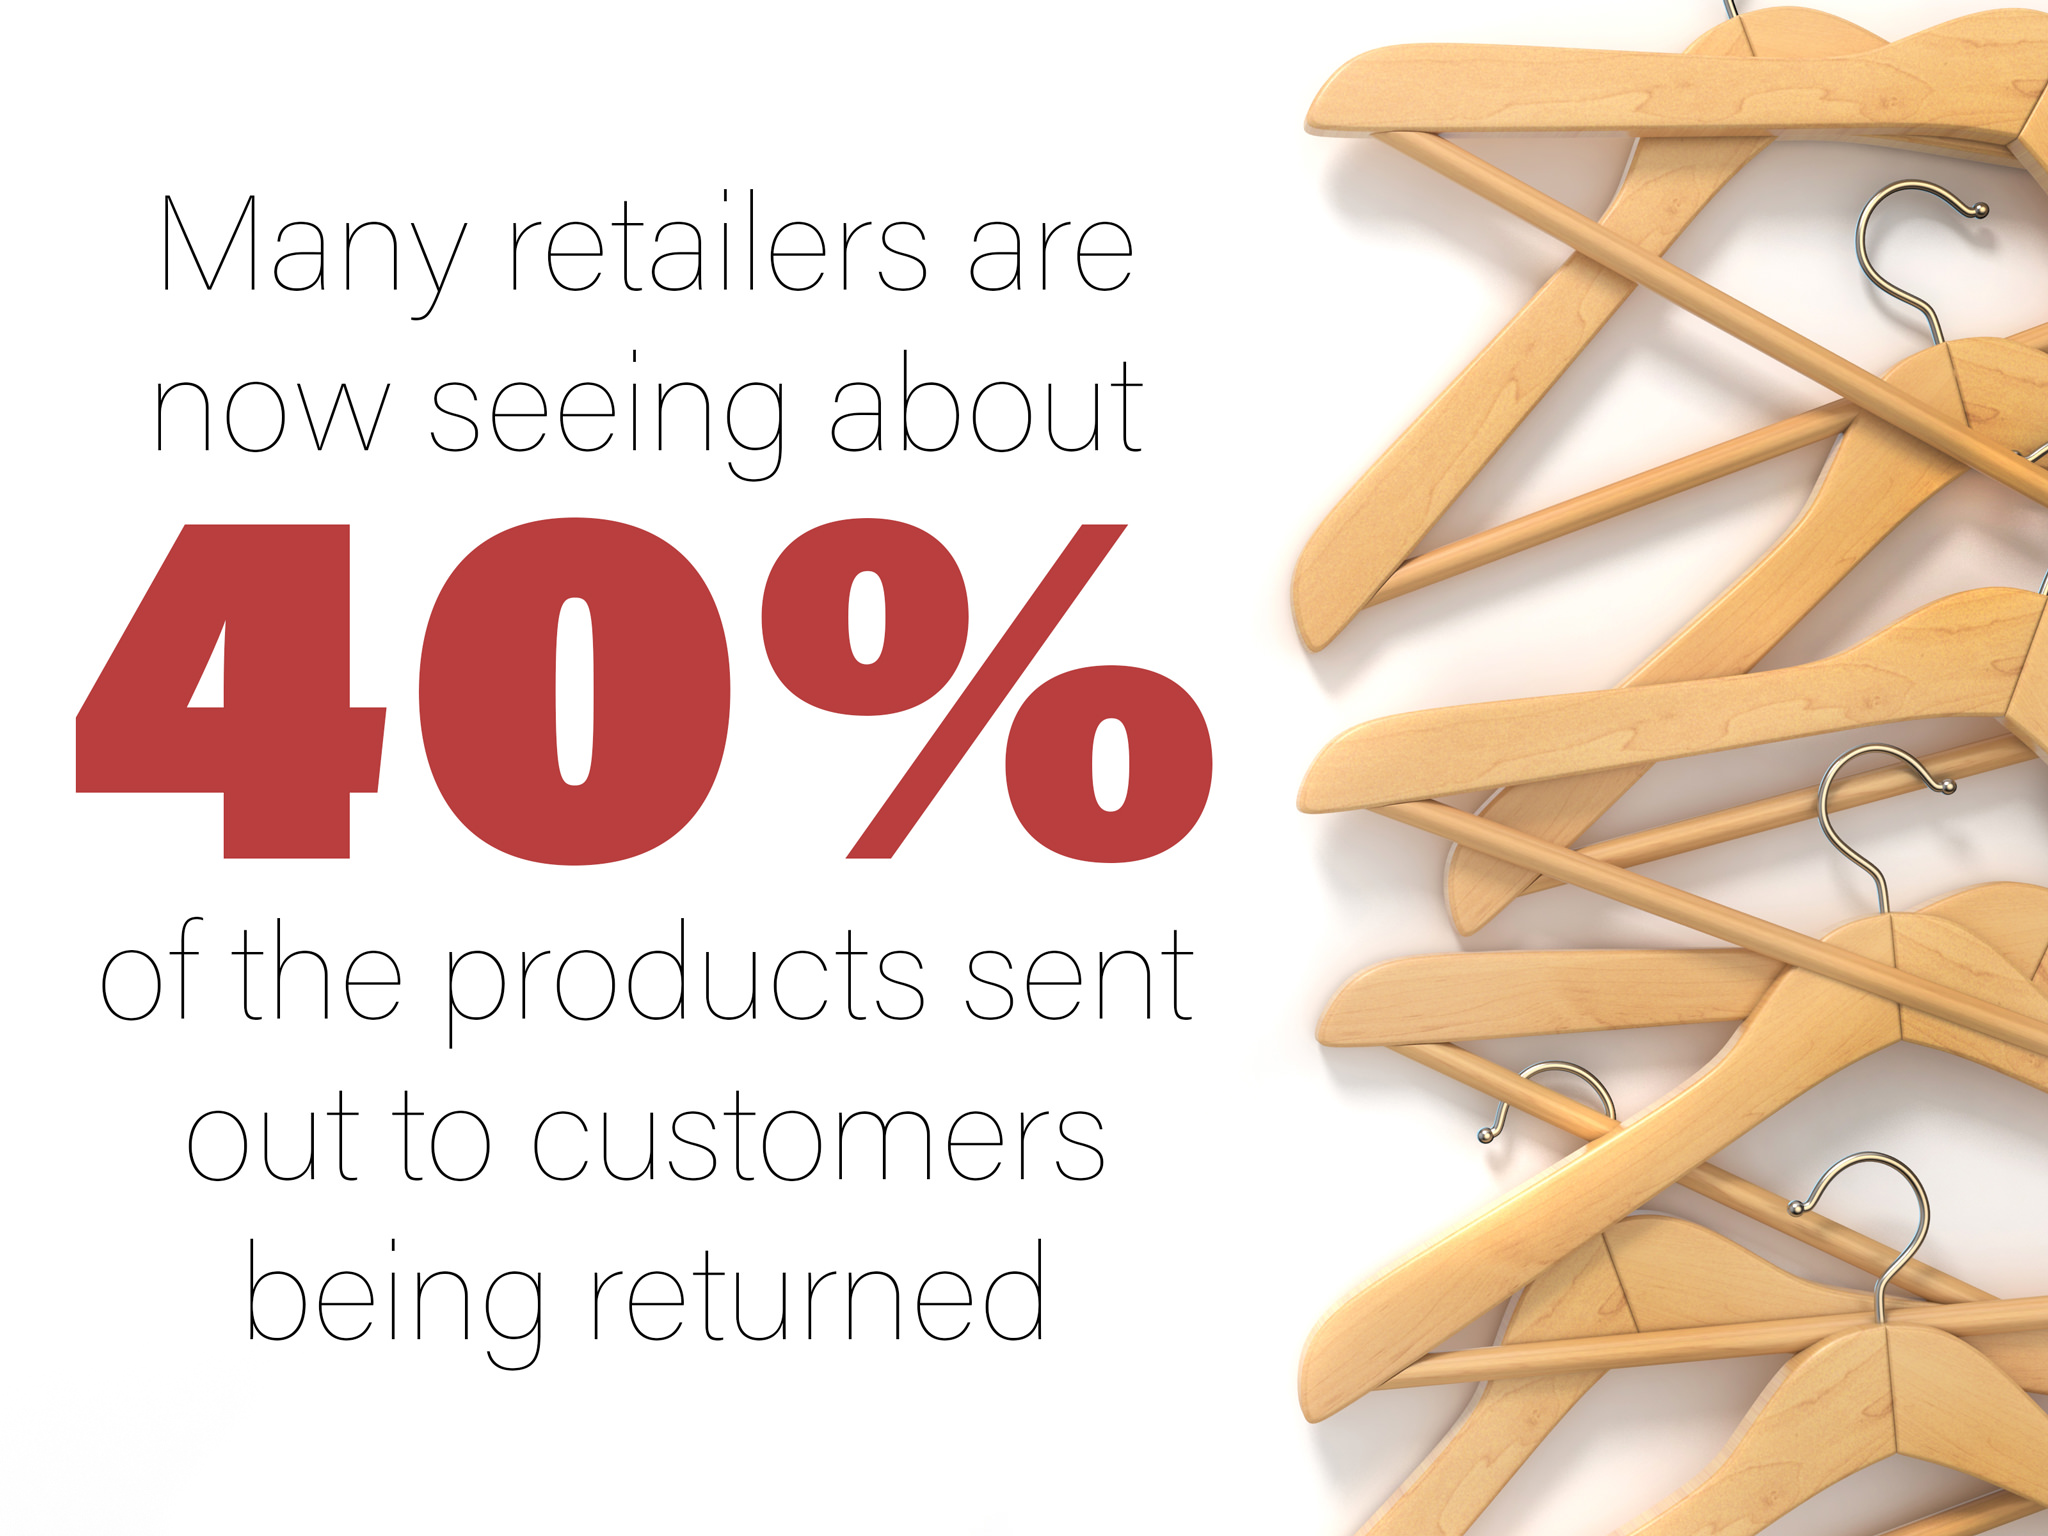 40% of products being returned